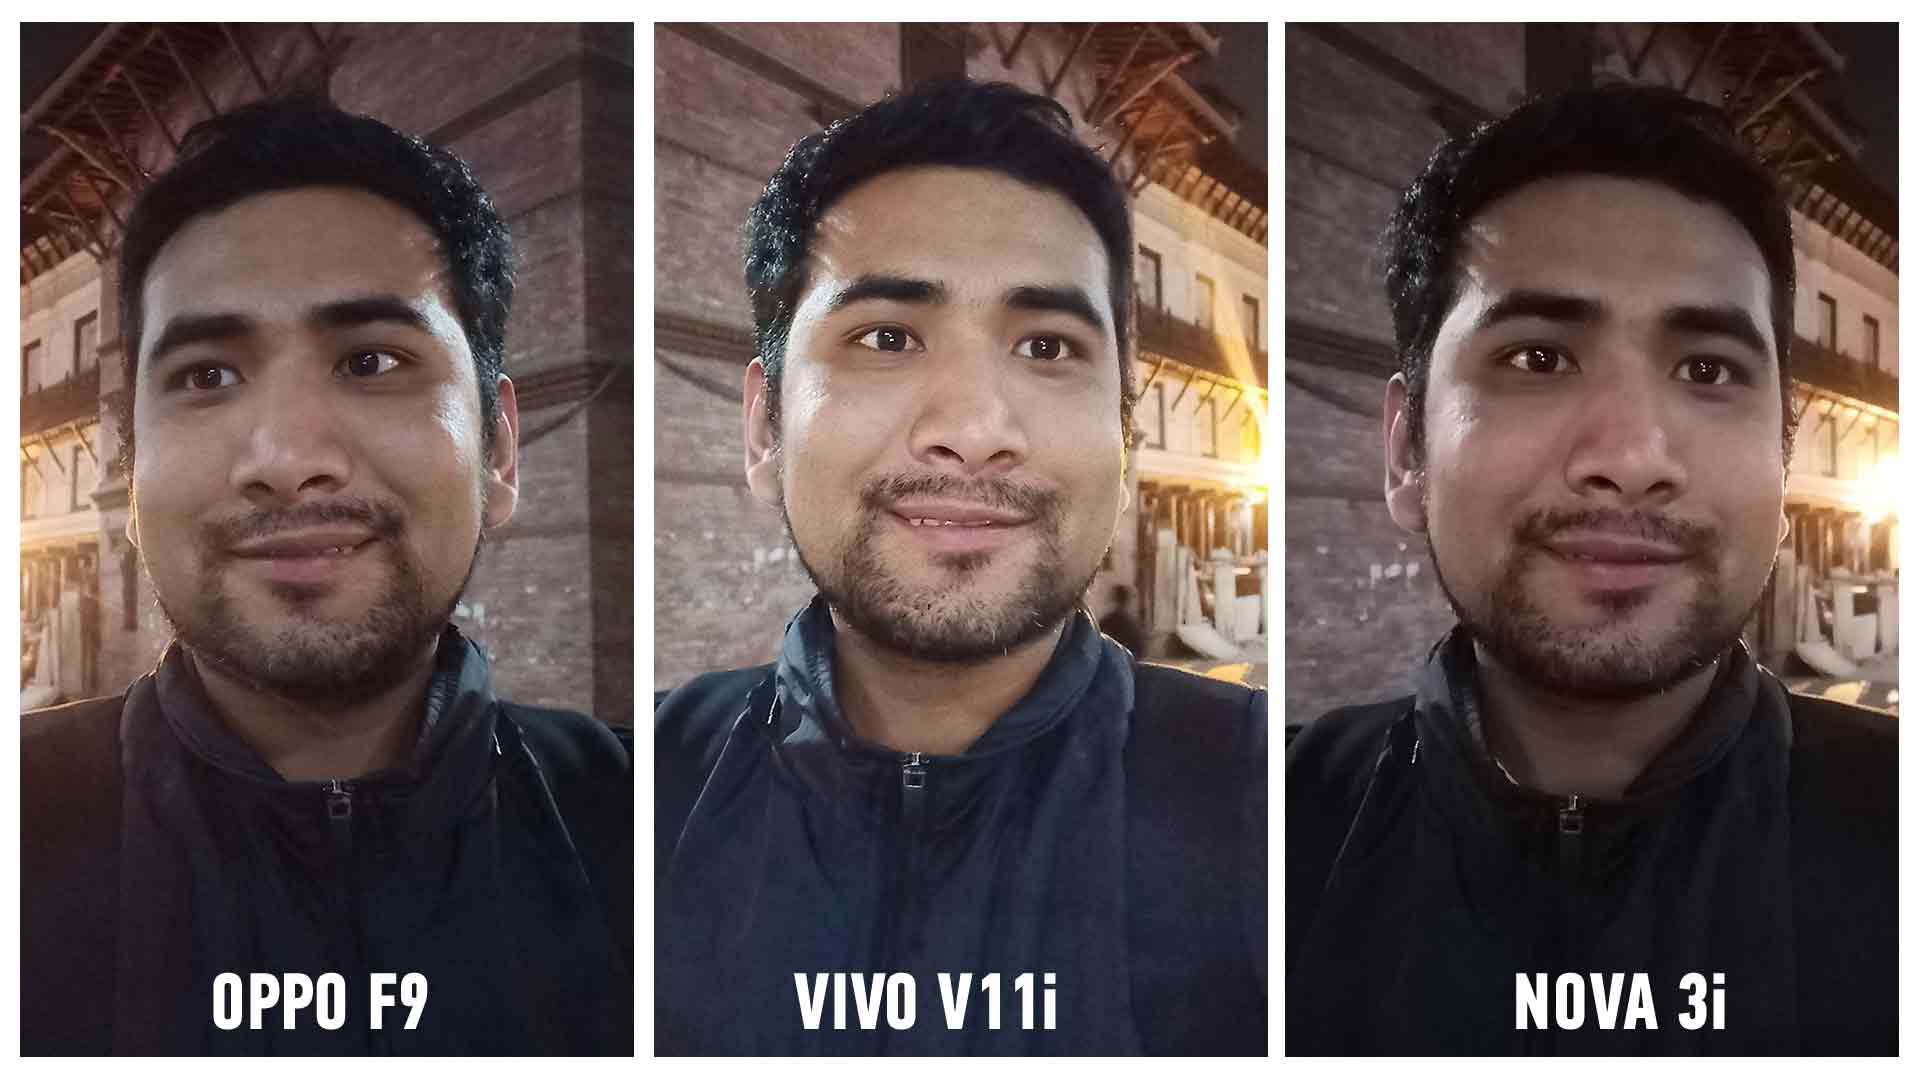 vivo v11 vs oppo f9 vs nova 3i selfie camera comparison night